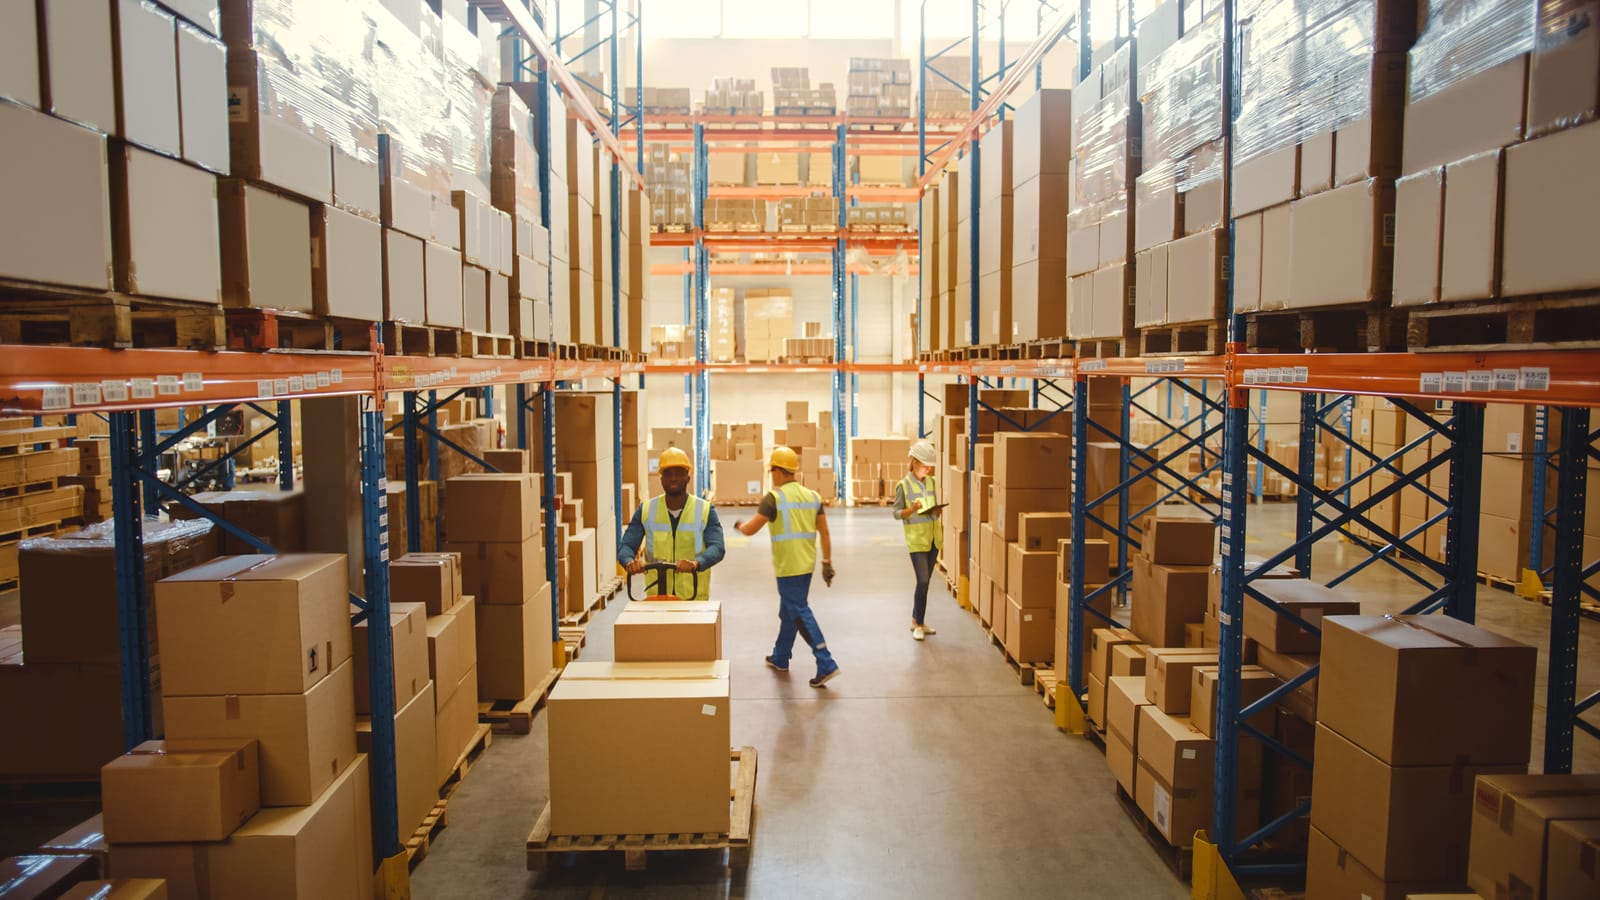 Evaluating and enhancing employee experience in the Transport & Logistics industry